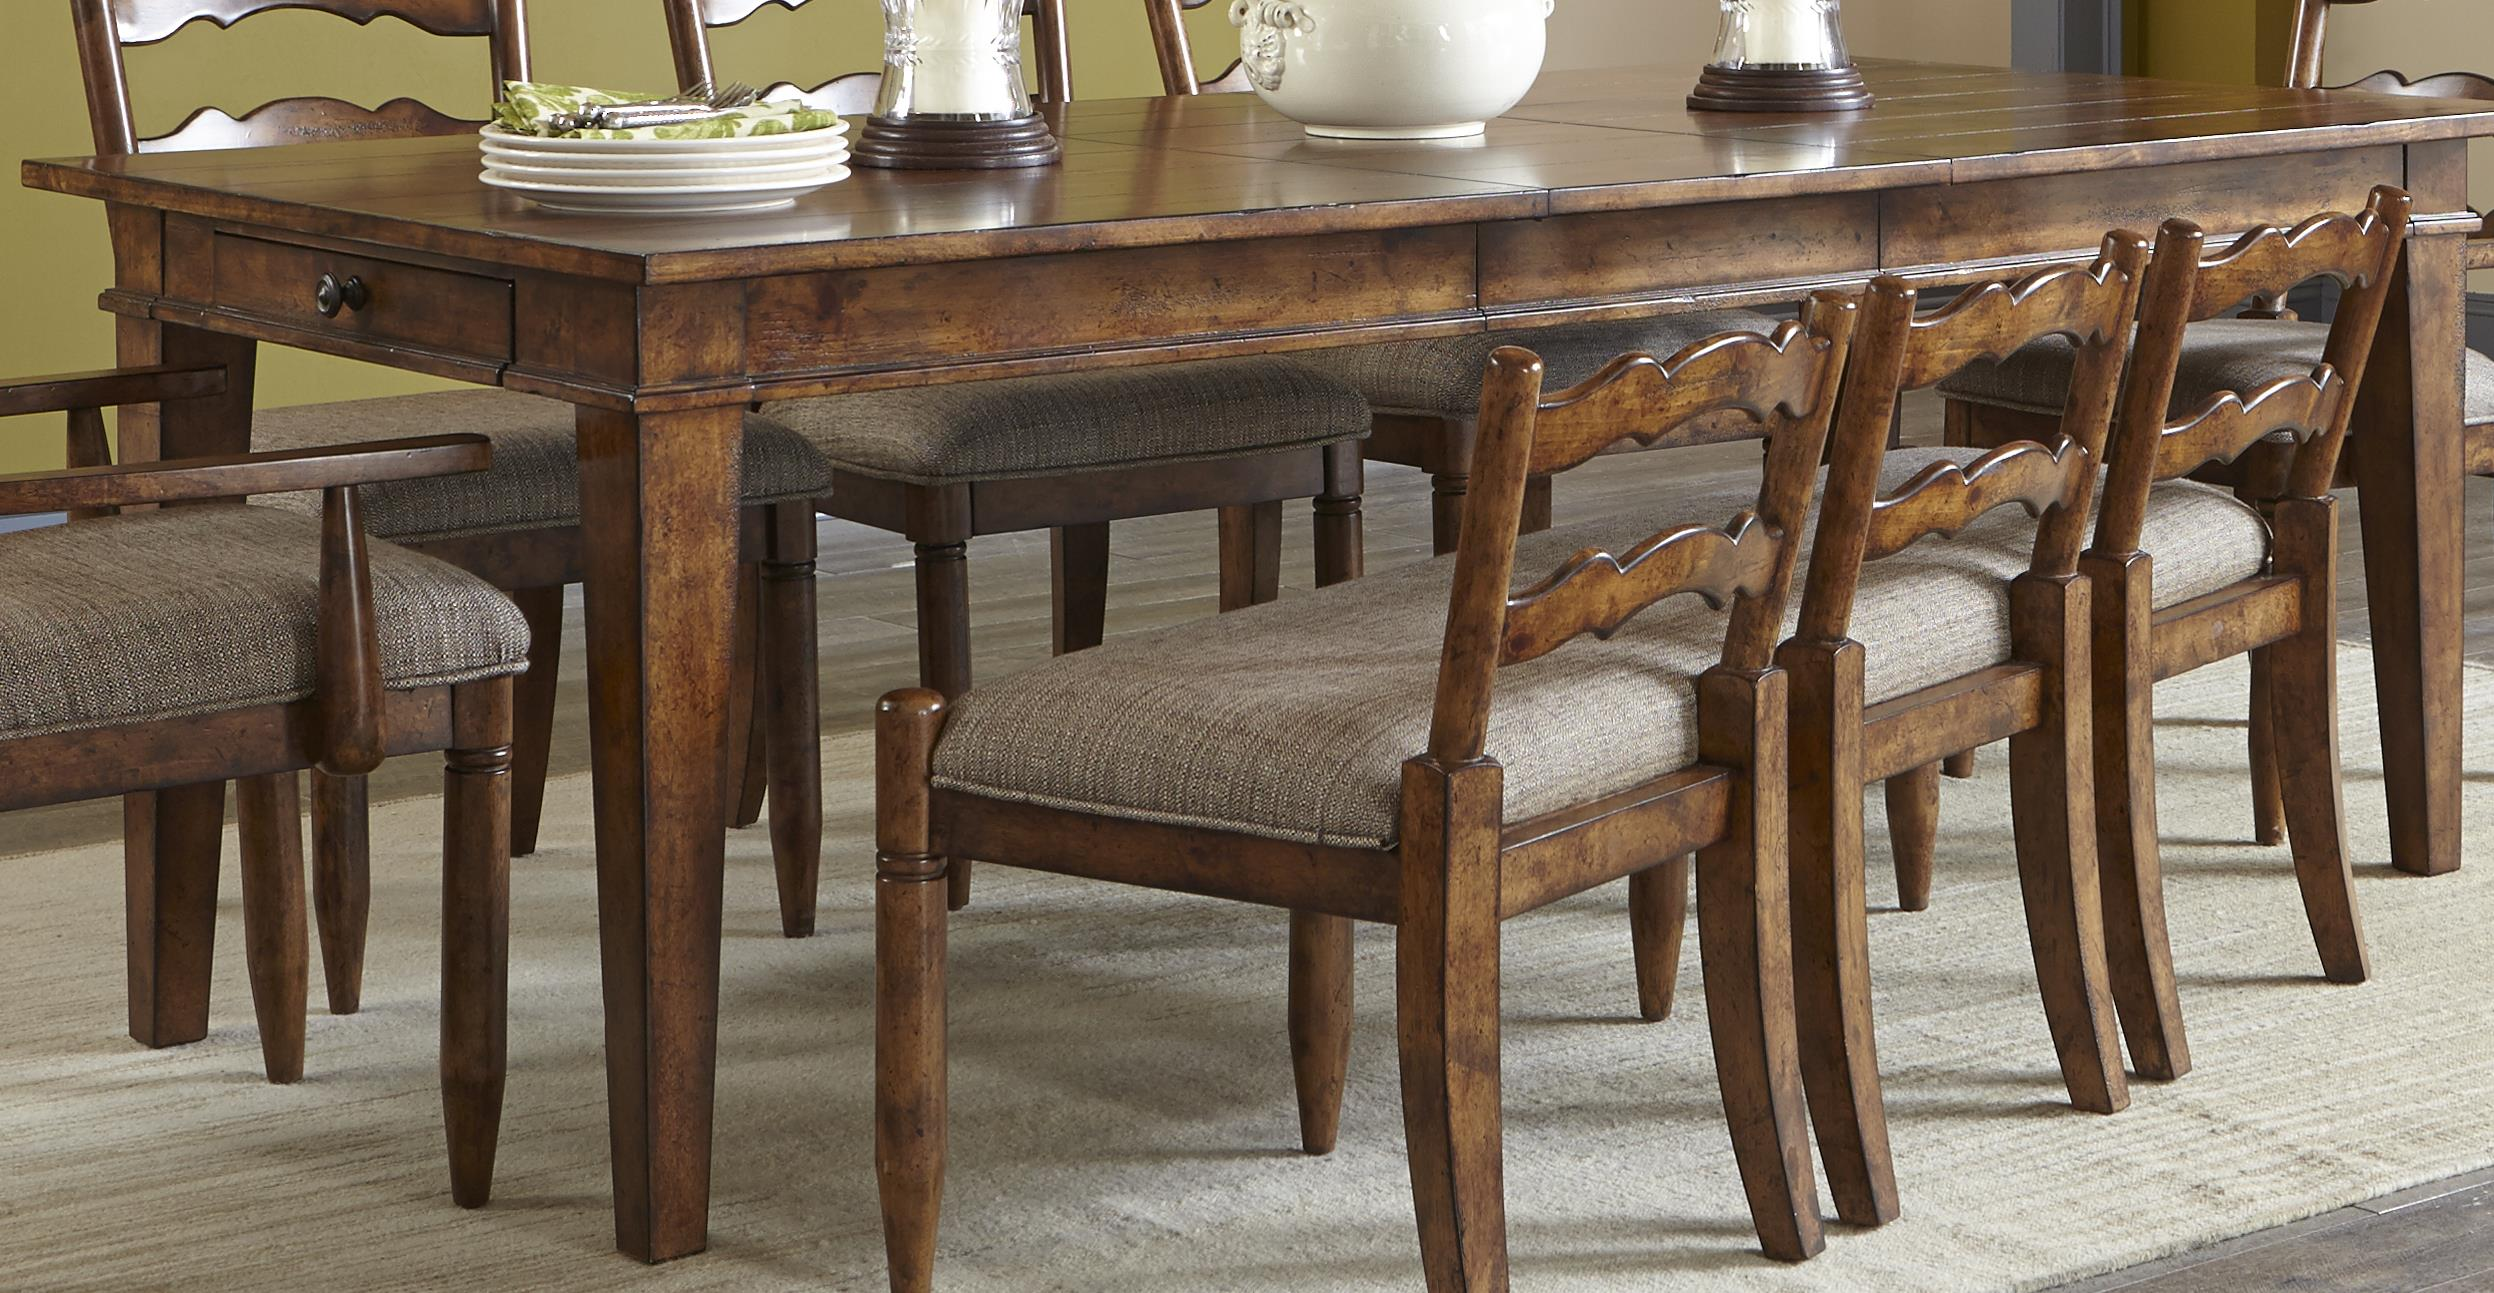 Elliston Place Willow Creek Willow Creek Dining Table - Item Number: 286591464